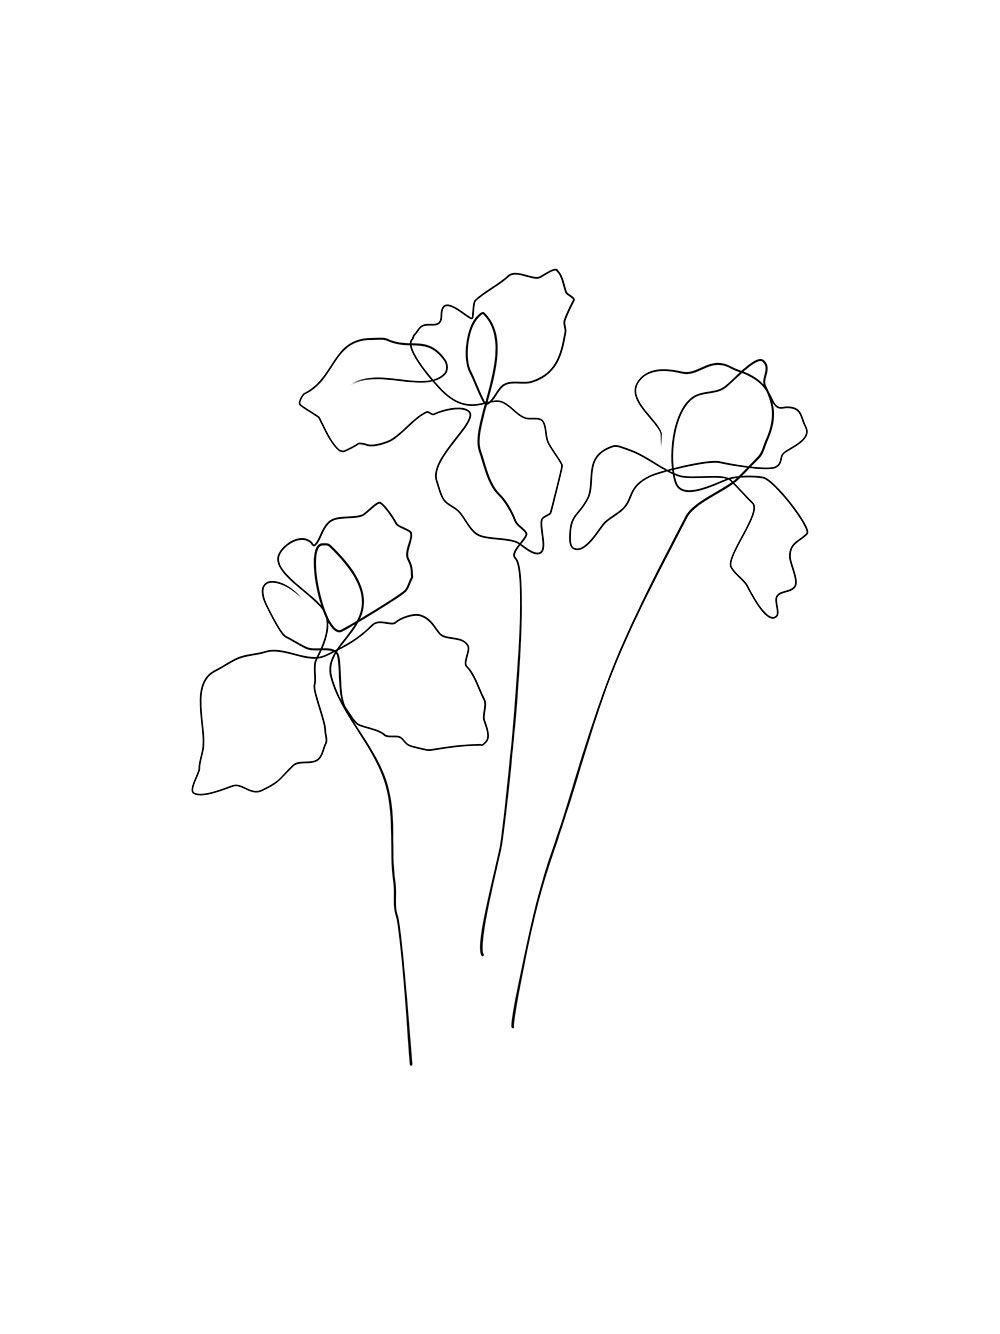 How To Draw An Iris Flower Step By Step Drawing Tutorials Iris Drawing Flower Sketches Iris Flowers